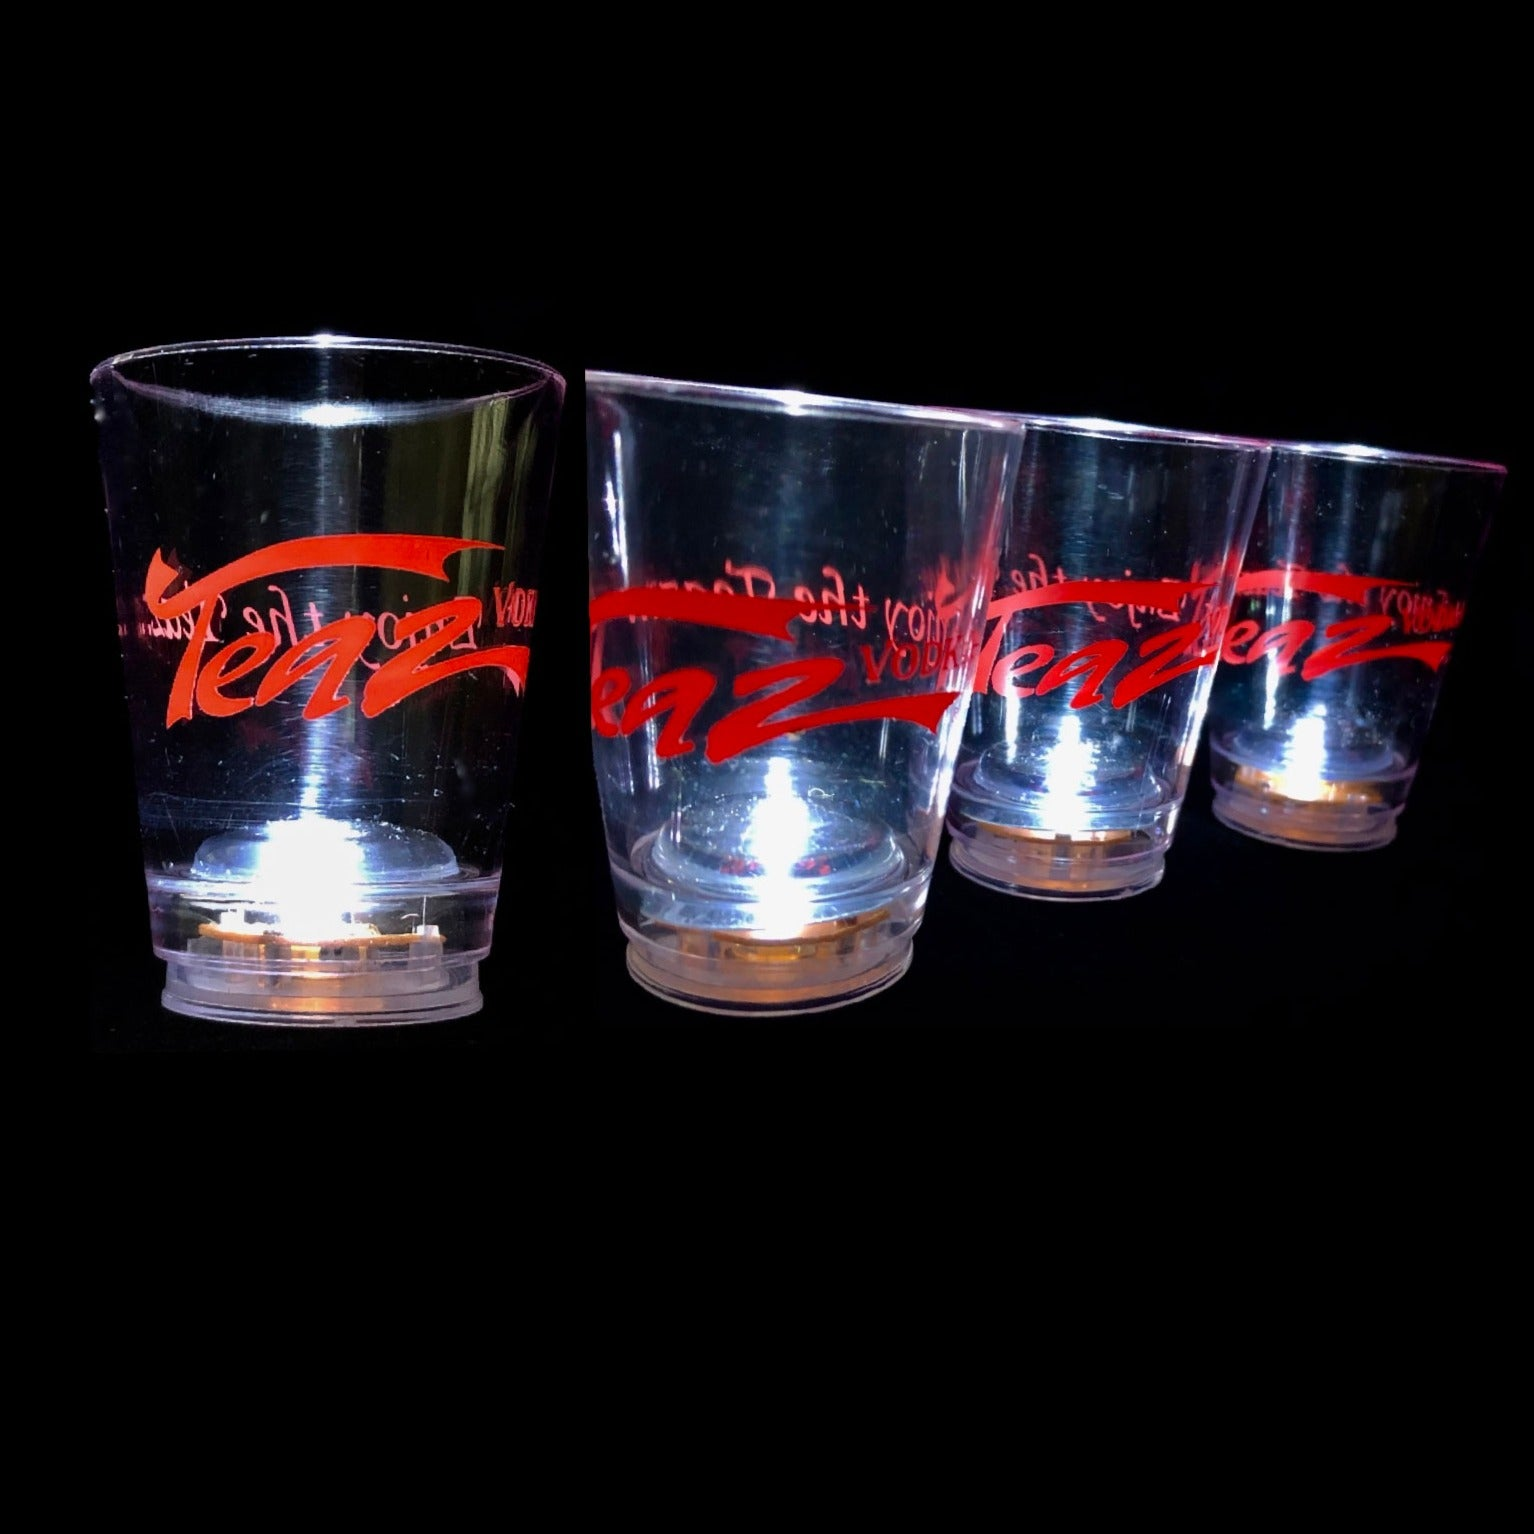 Teaz Vodka Lighted Acrylic Shot Glasses